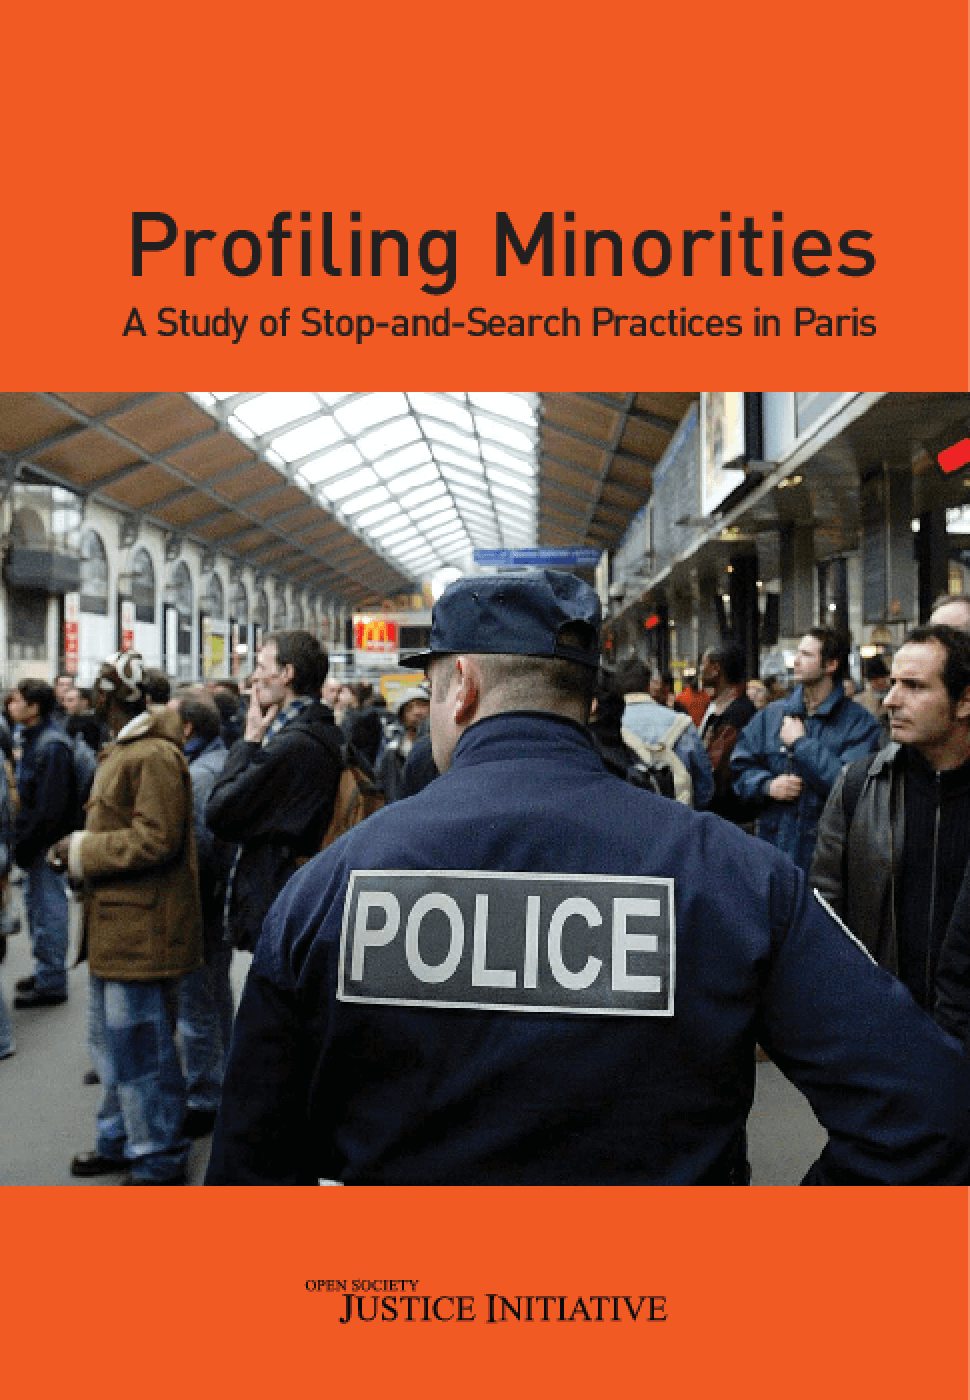 Profiling Minorities: A Study of Stop-and-Search Practices in Paris